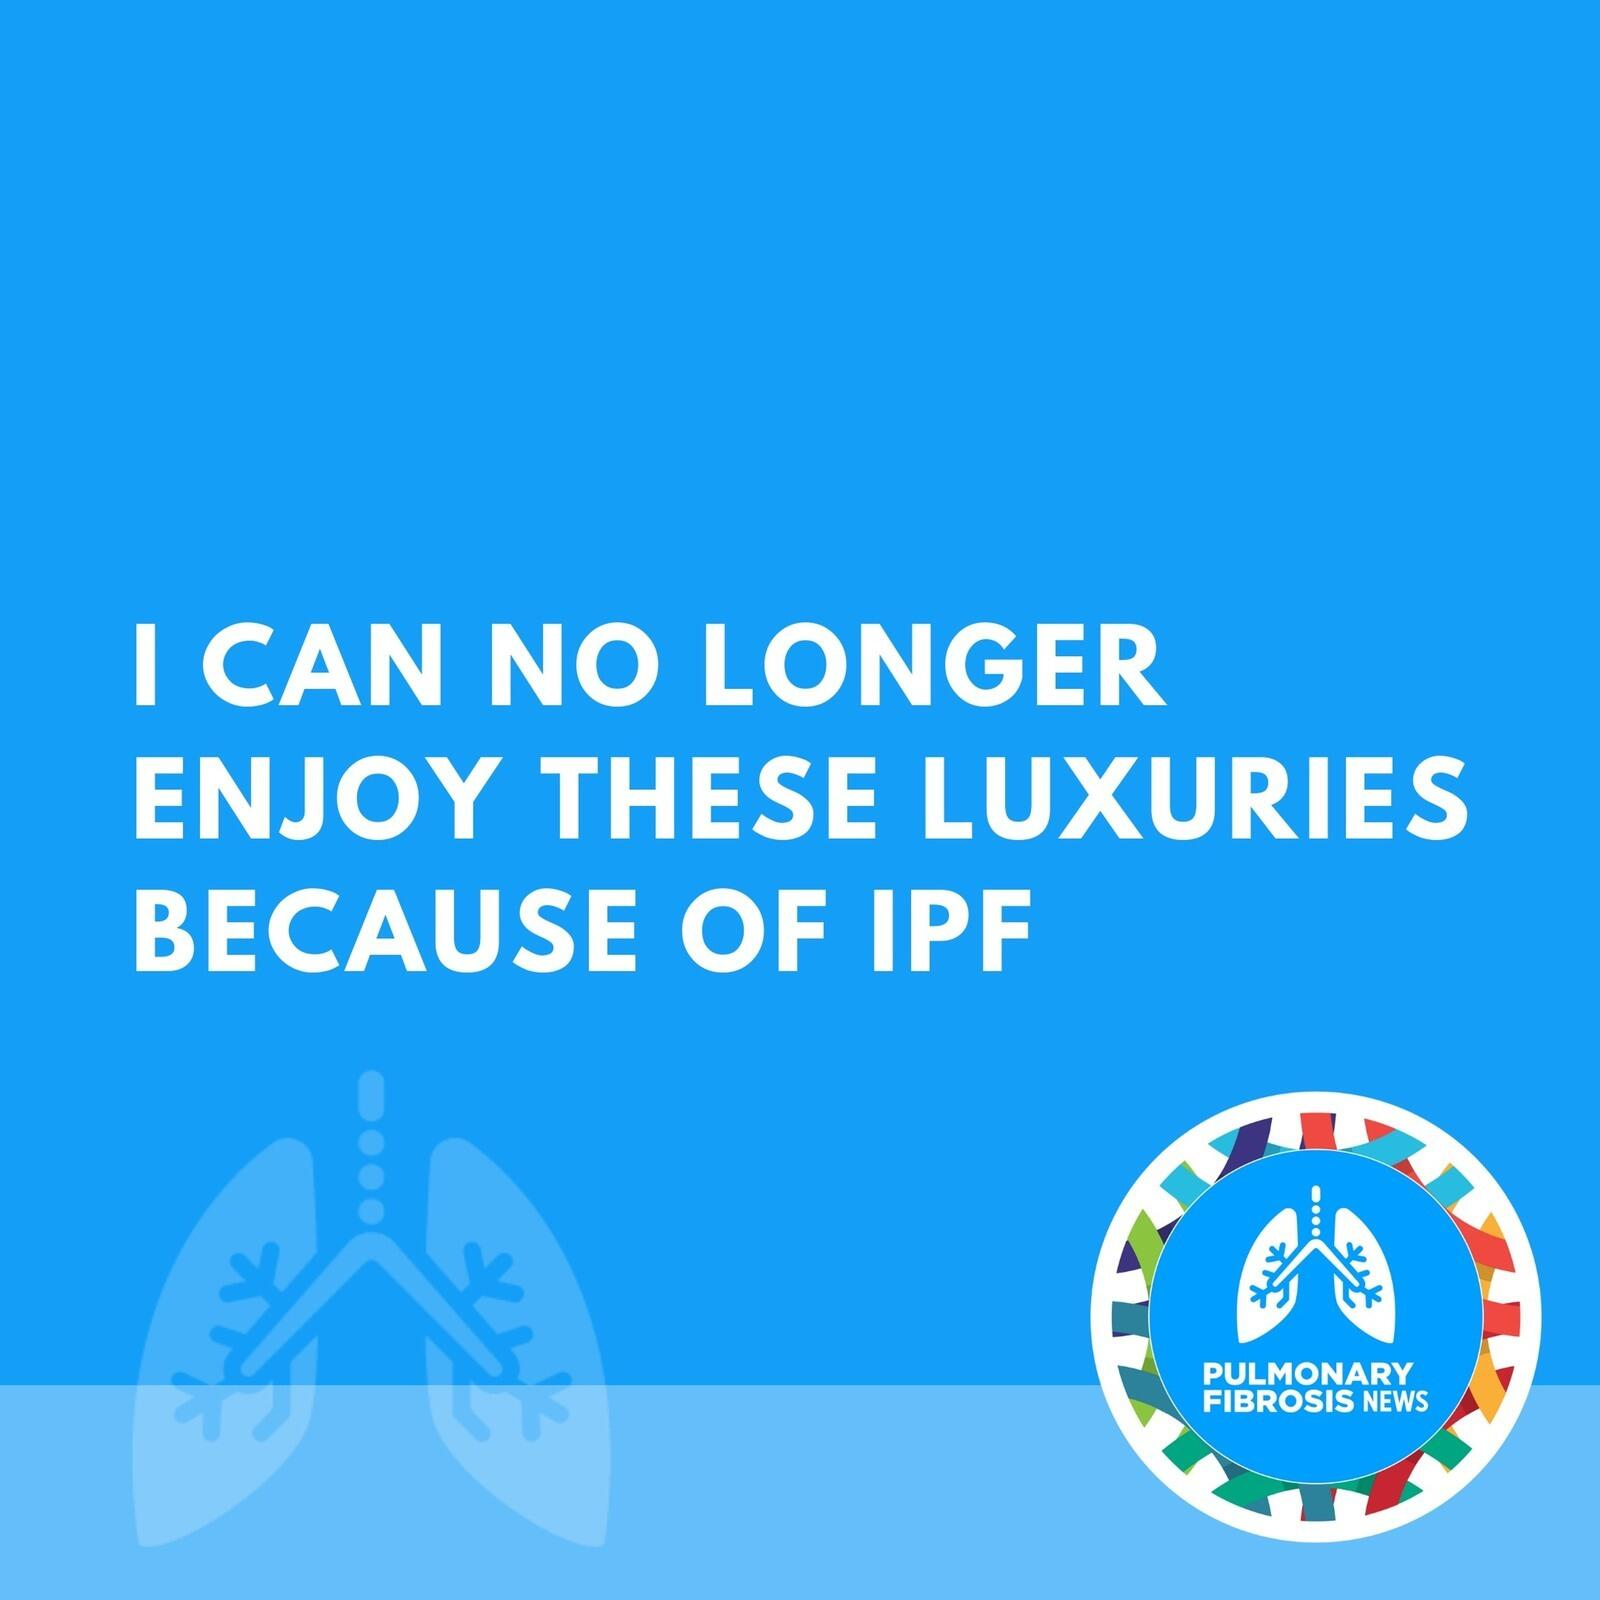 I Can No Longer Enjoy These Luxuries Because of IPF